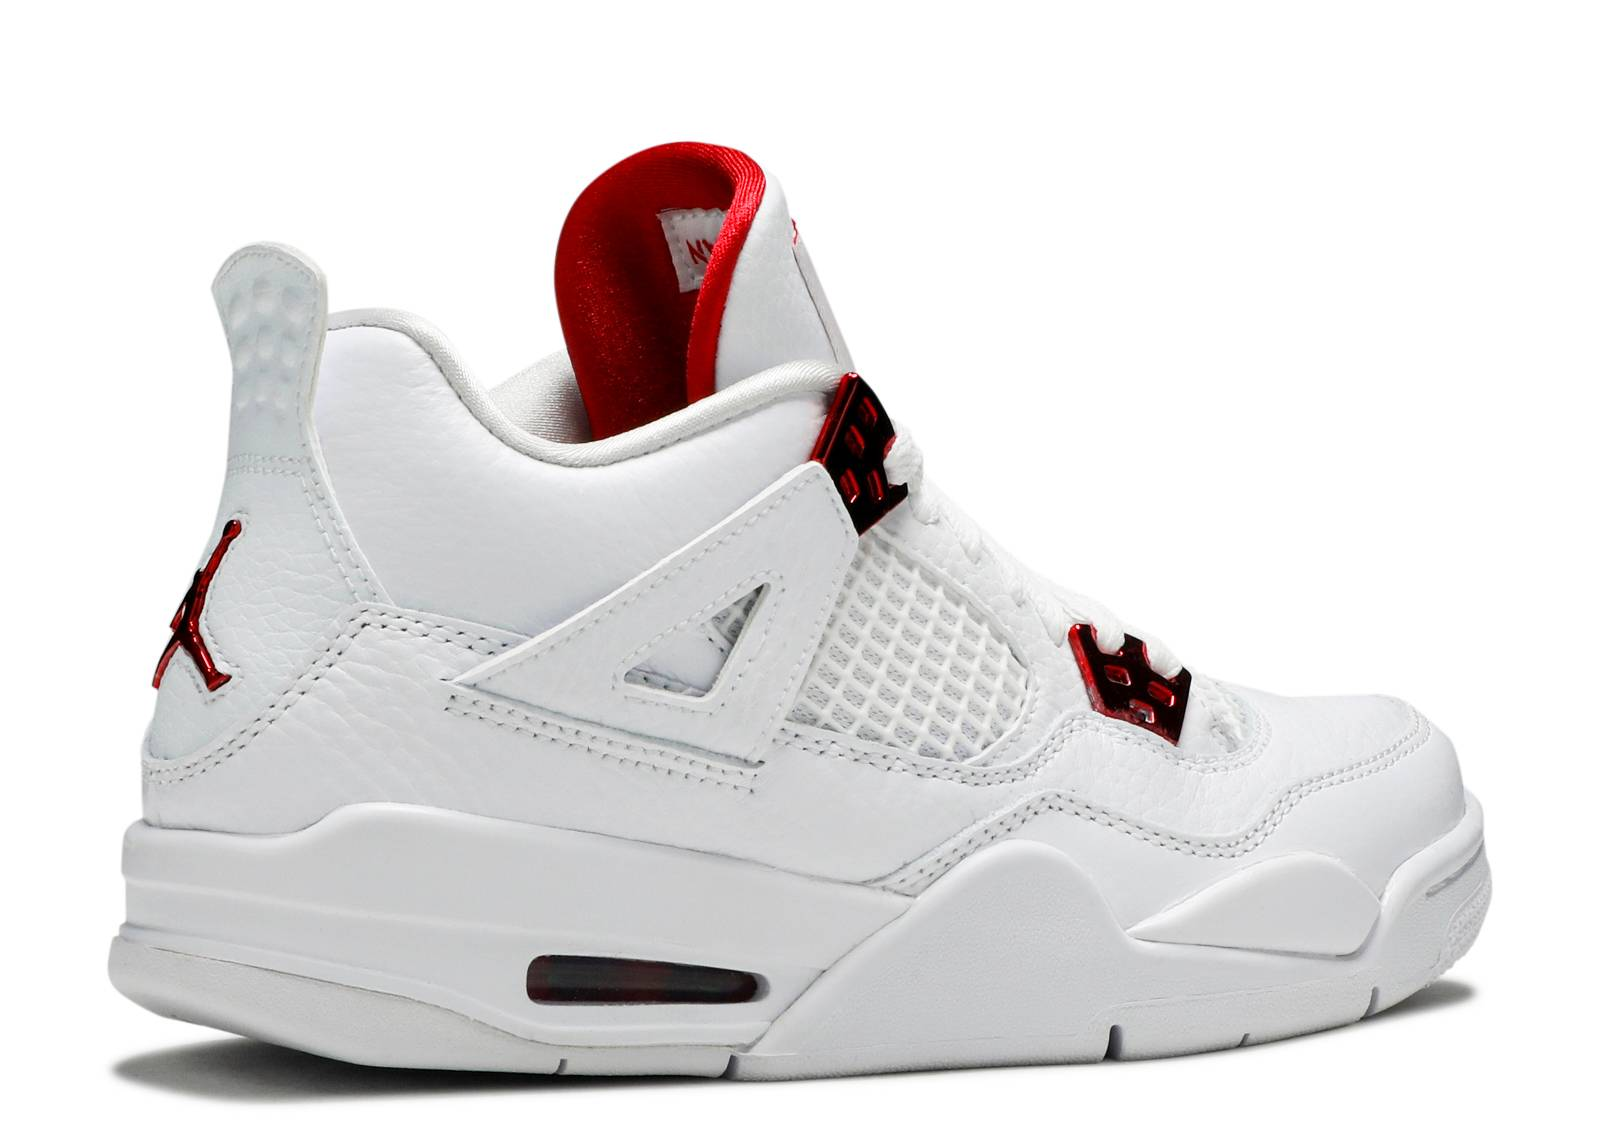 Nike Air Jordan 4 Retro GS 'Red Metallic'